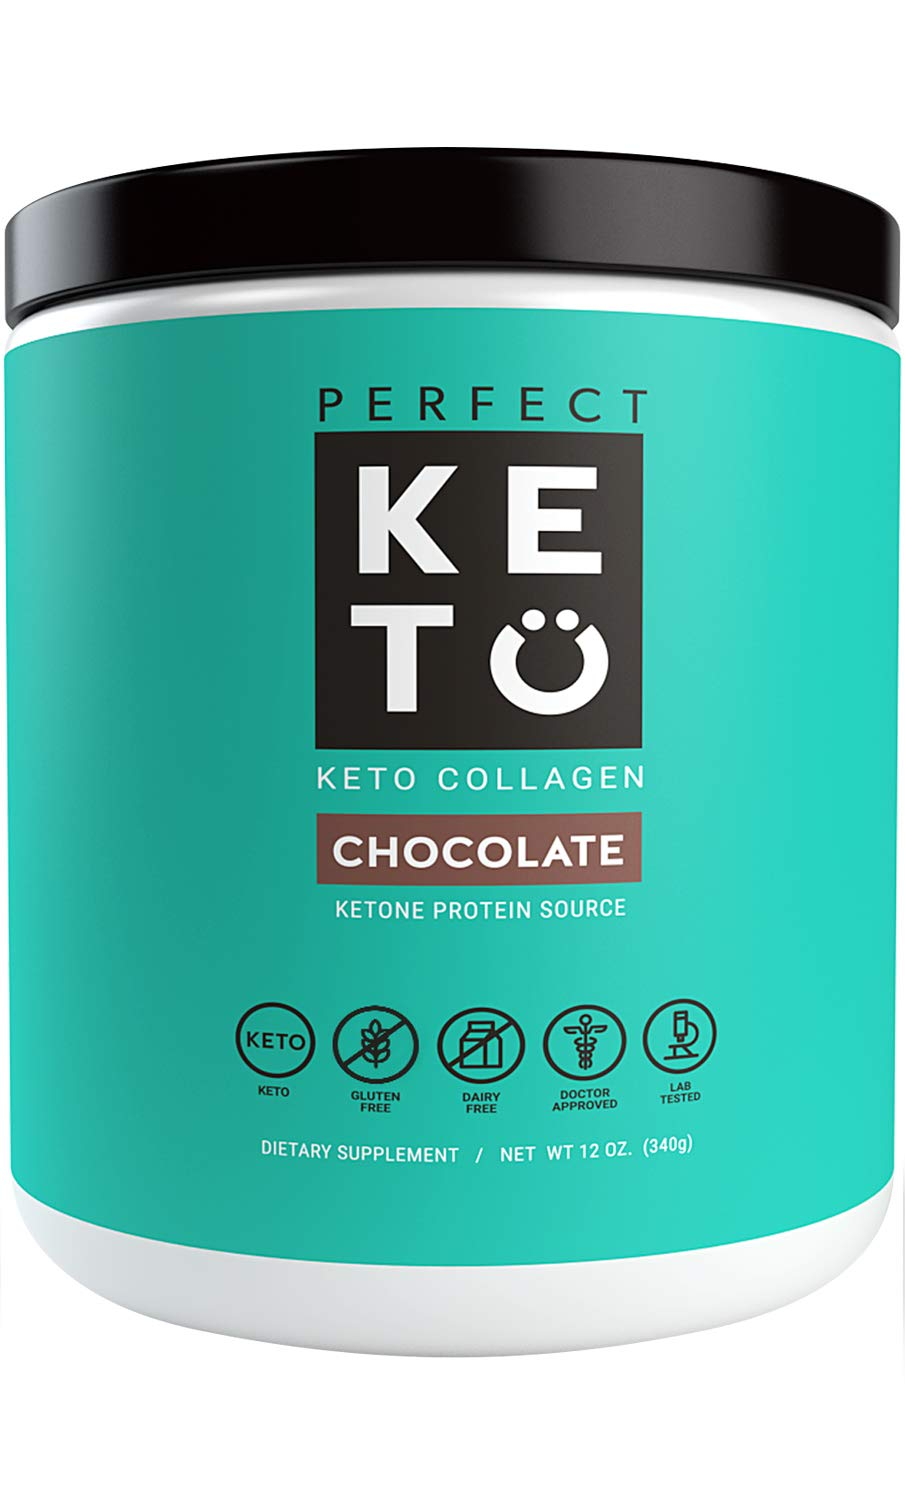 Perfect Keto Chocolate Protein Powder: Collagen Peptides Grassfed Low Carb Keto Drink Supplement with MCT Oil Powder. Best as Keto Drink Creamer or Added to Ketogenic Diet Snacks. Paleo & Gluten Free by Perfect Keto